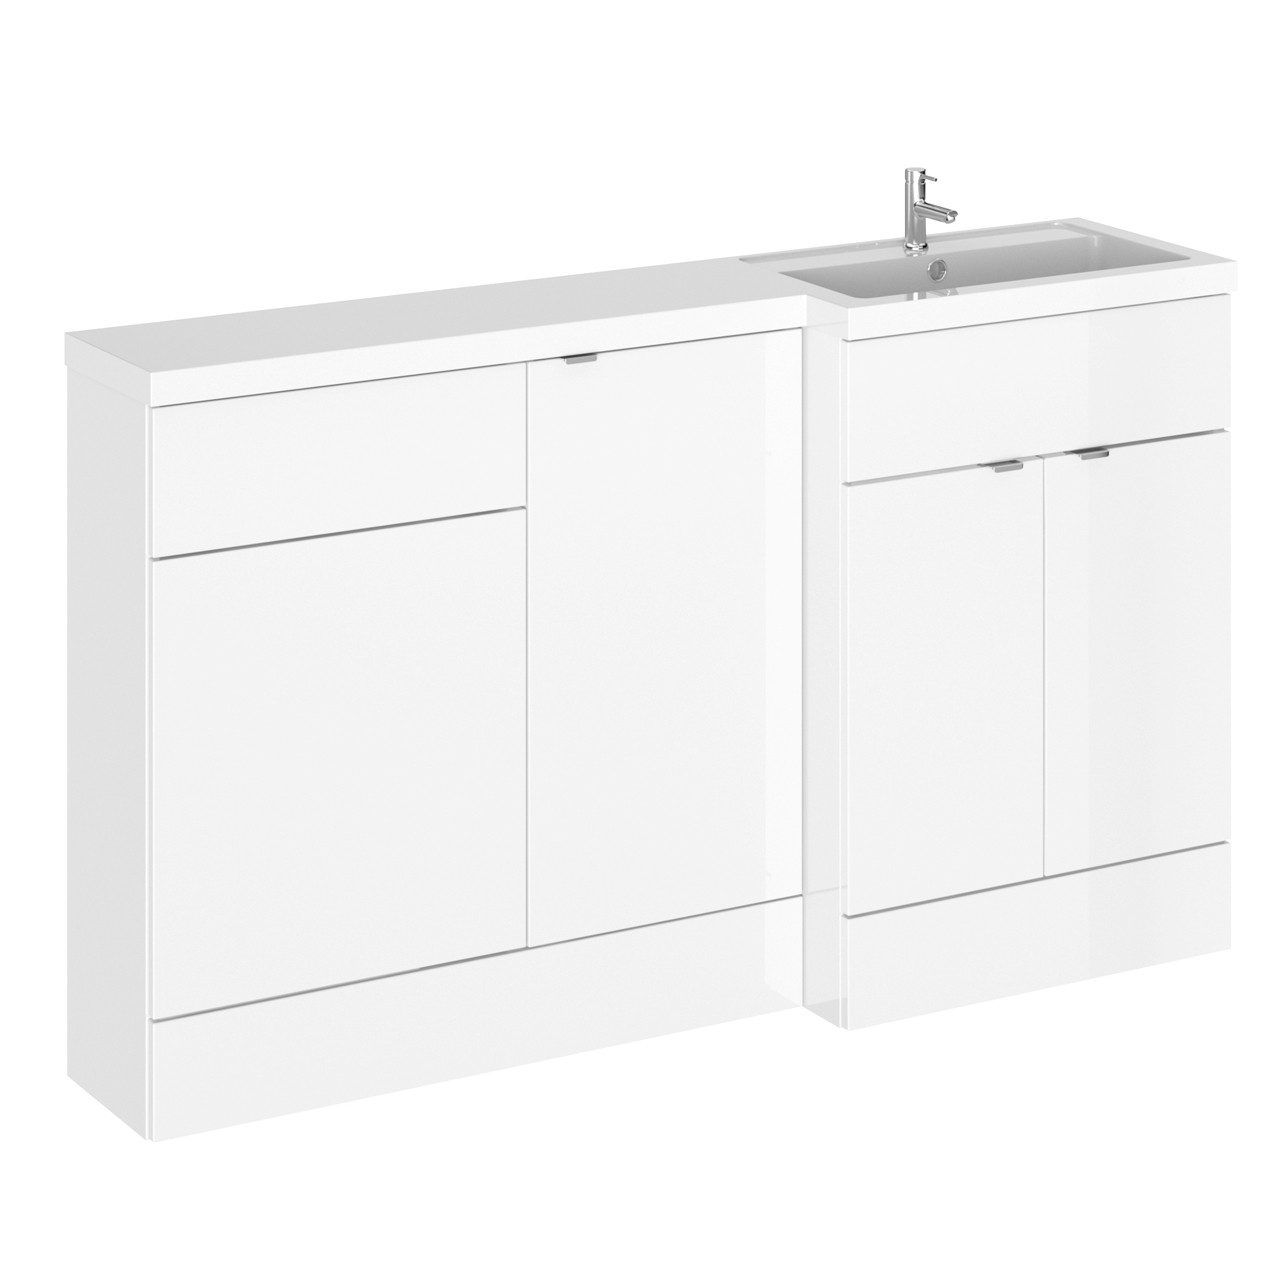 Hudson Reed Gloss White 1500mm Full Depth Combination Vanity, WC and Storage Unit with Right Hand Basin - CBI116